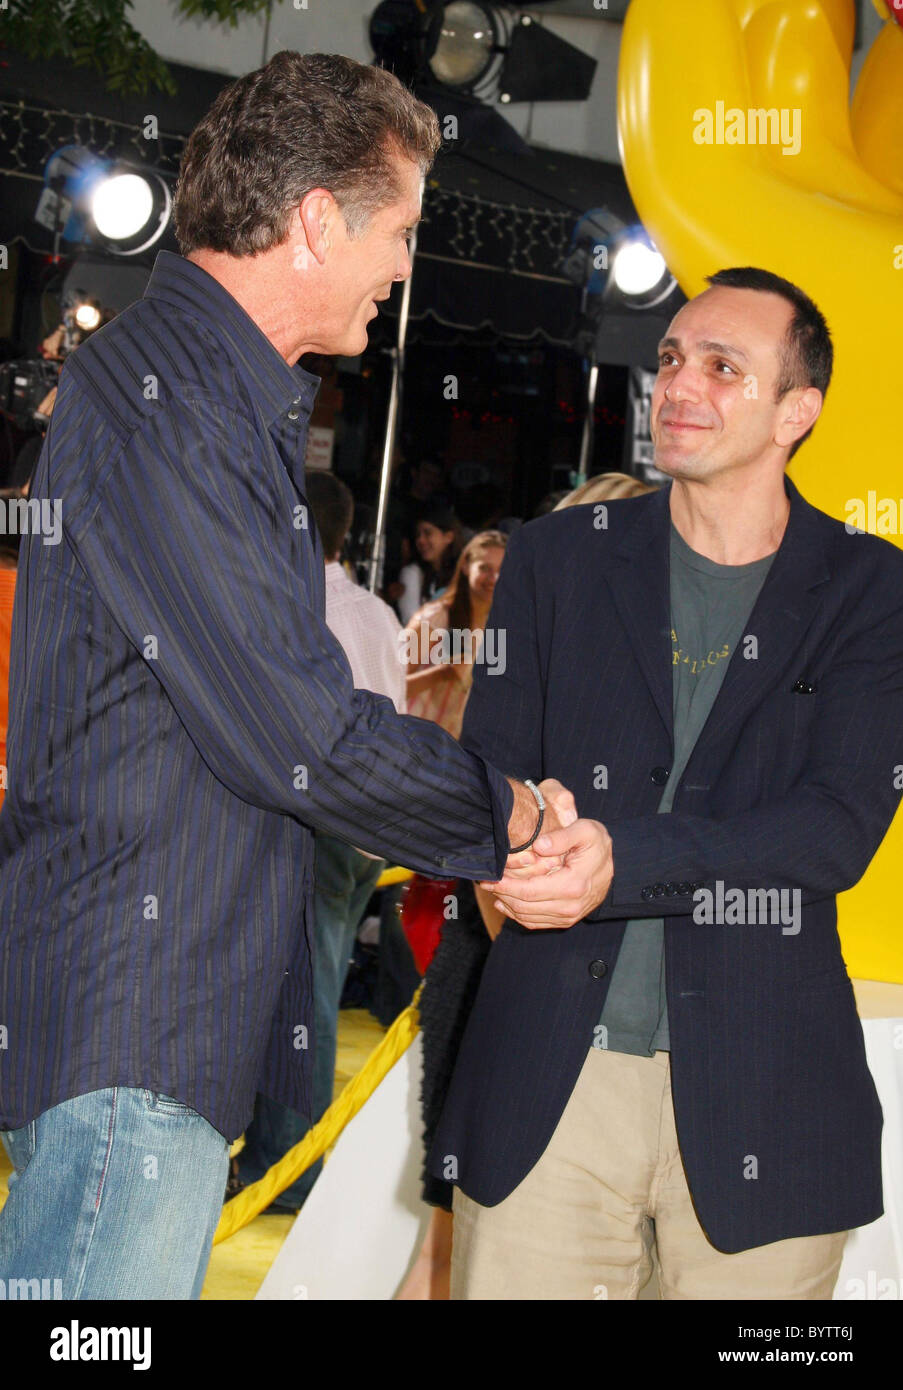 David Hasselhoff And Hank Azaria The Simpsons Movie Premiere At The Stock Photo Alamy